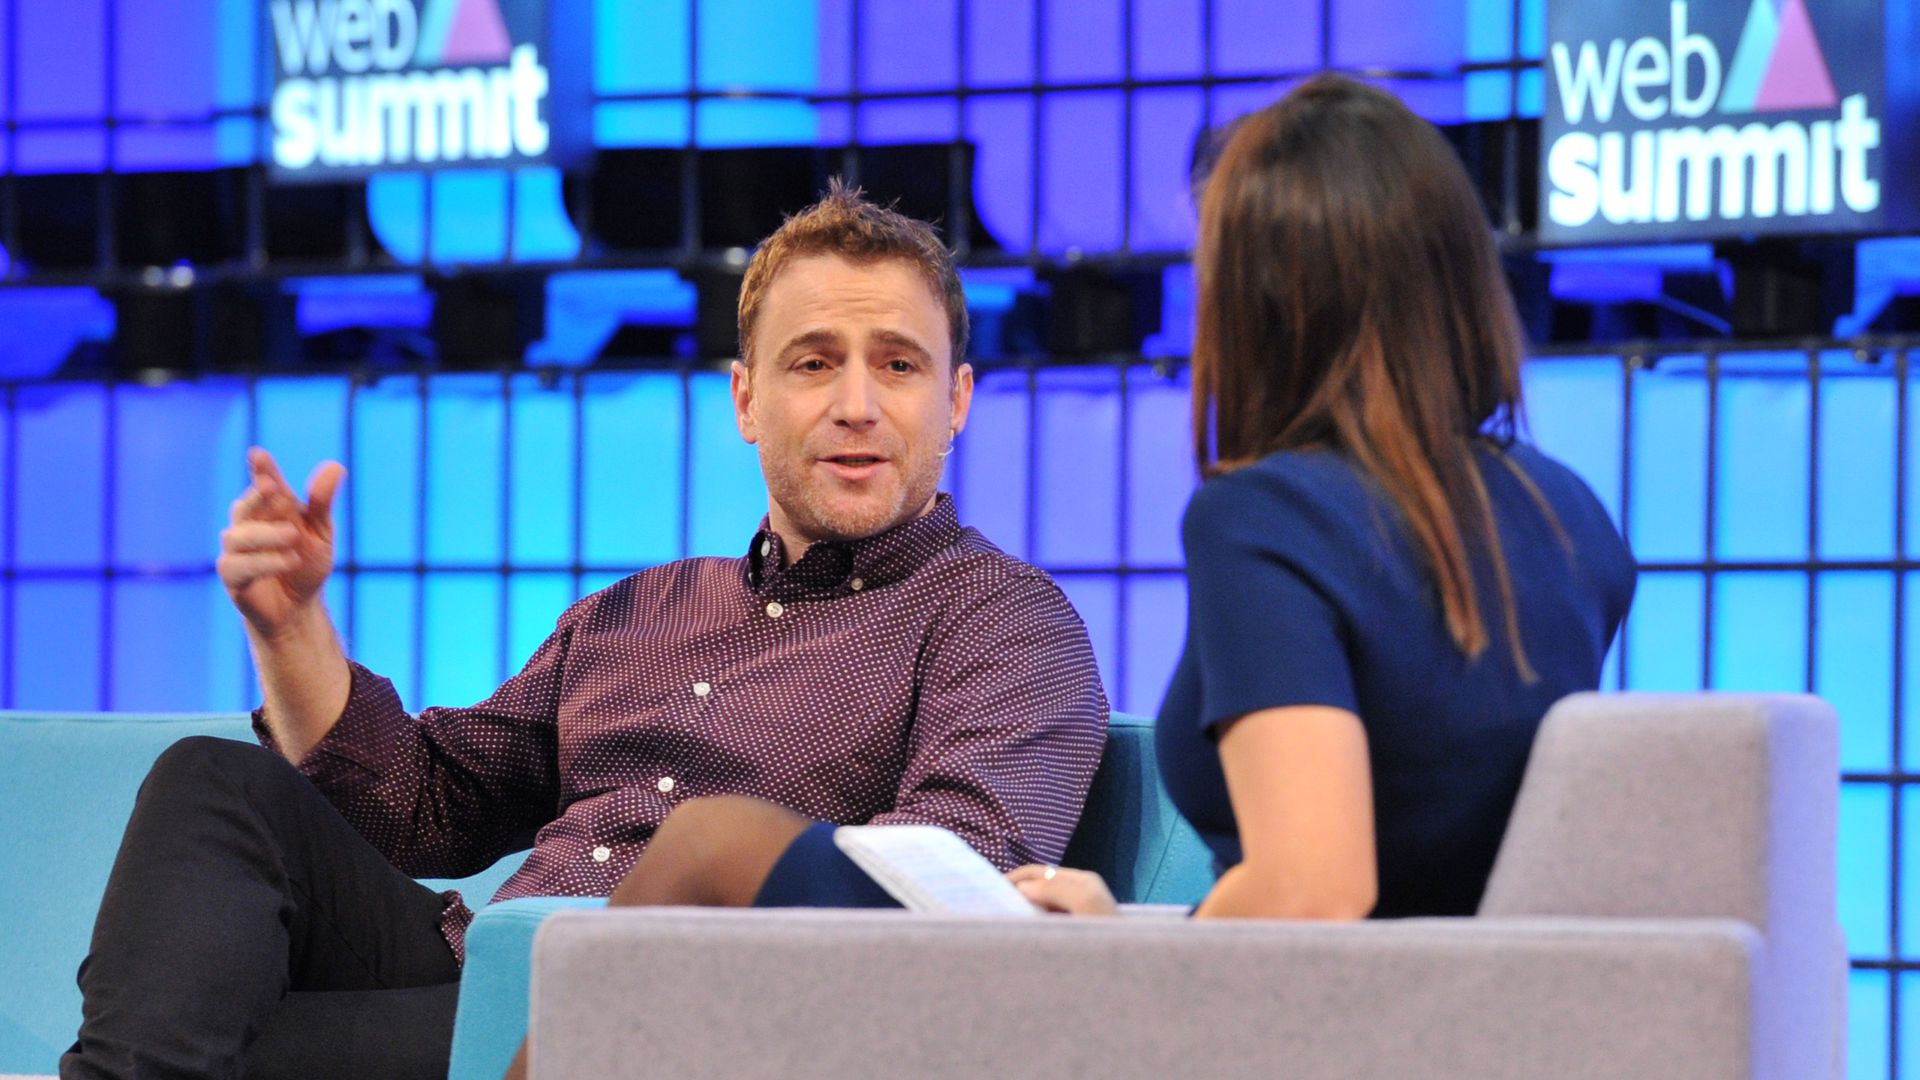 Photo of Slack CEO Stewart Butterfield speaking on conference stage.